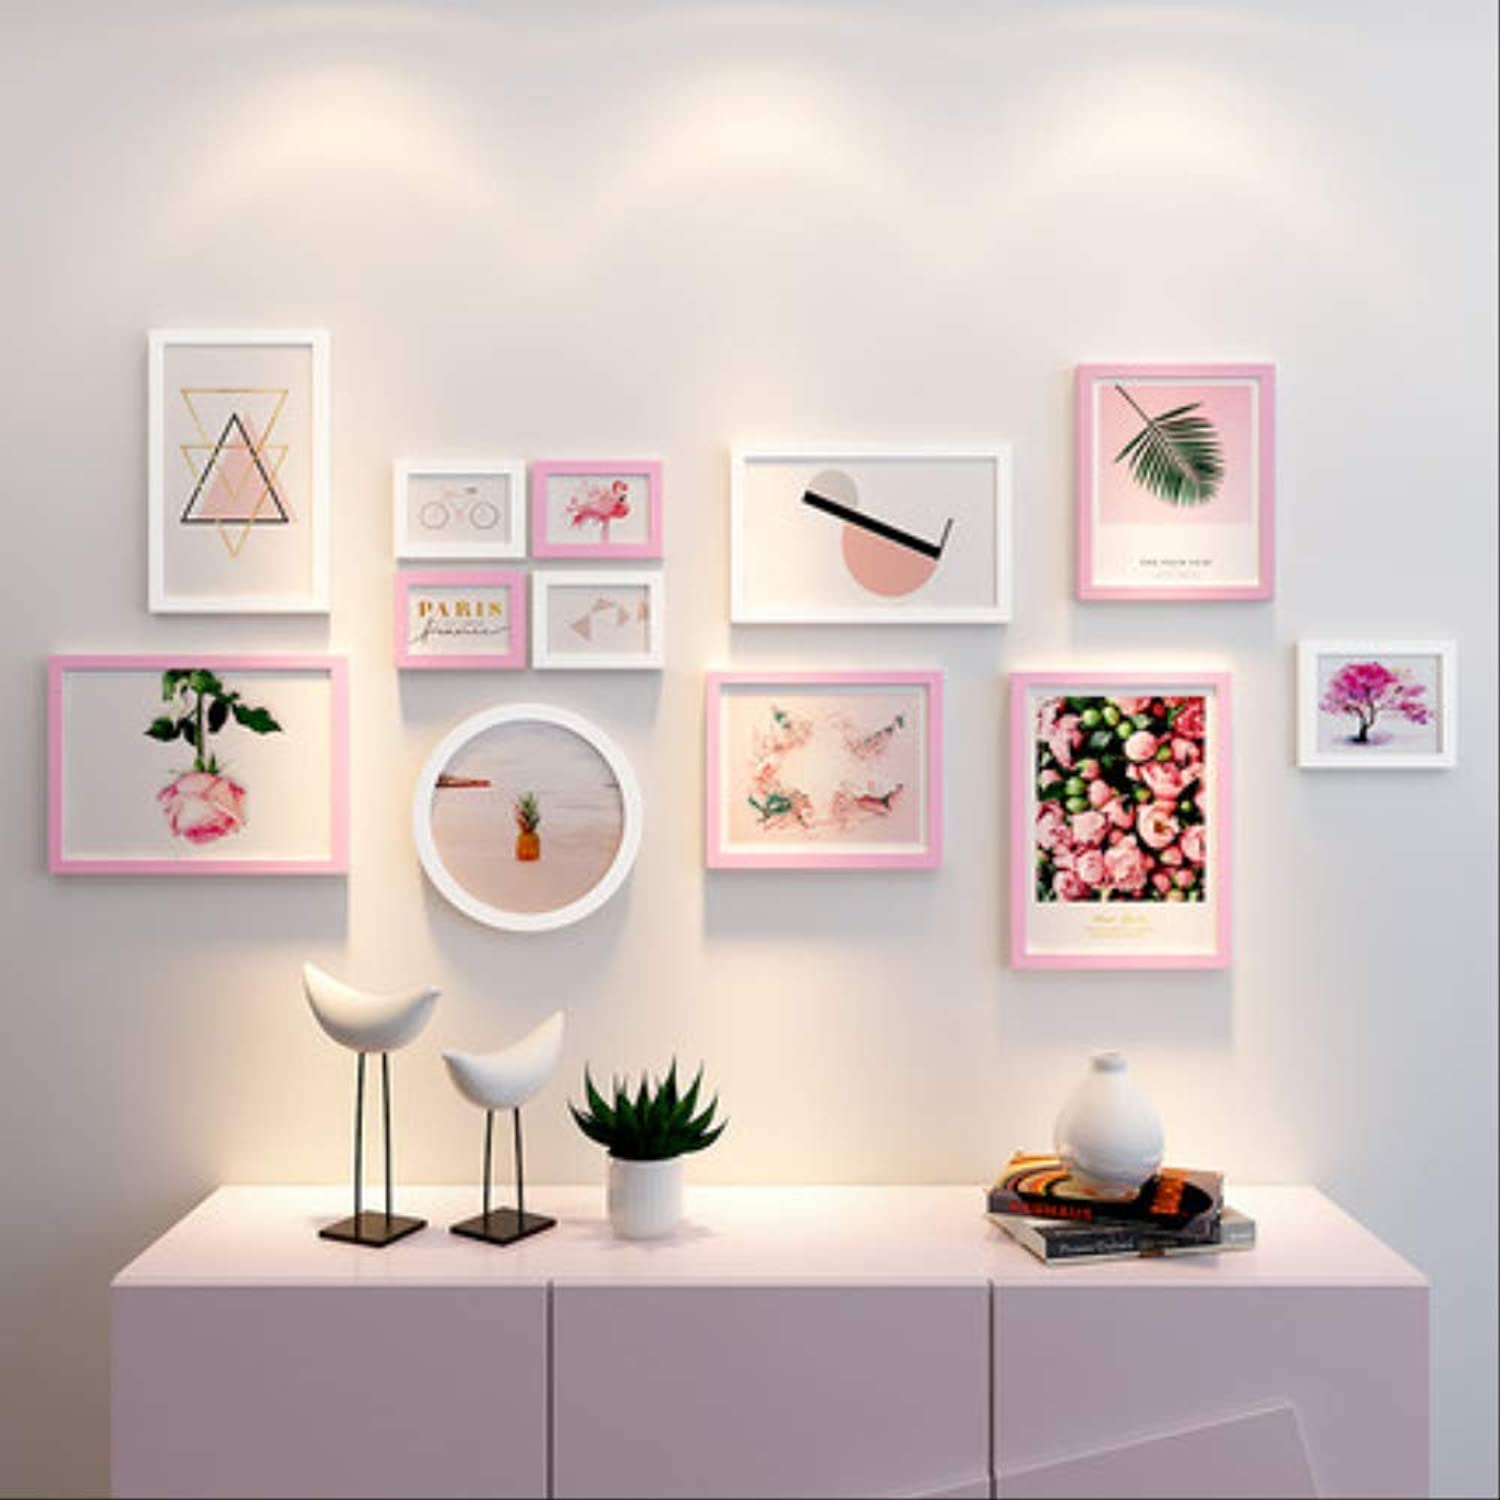 YKDDII Picture Frames Wooden Frames For Pictures Hanging Wall Frame Photo Set Photo Frames For Picture Wall 12 Pieces Black White Round Rectangle Classic Fashion Multifunction Photo Frame